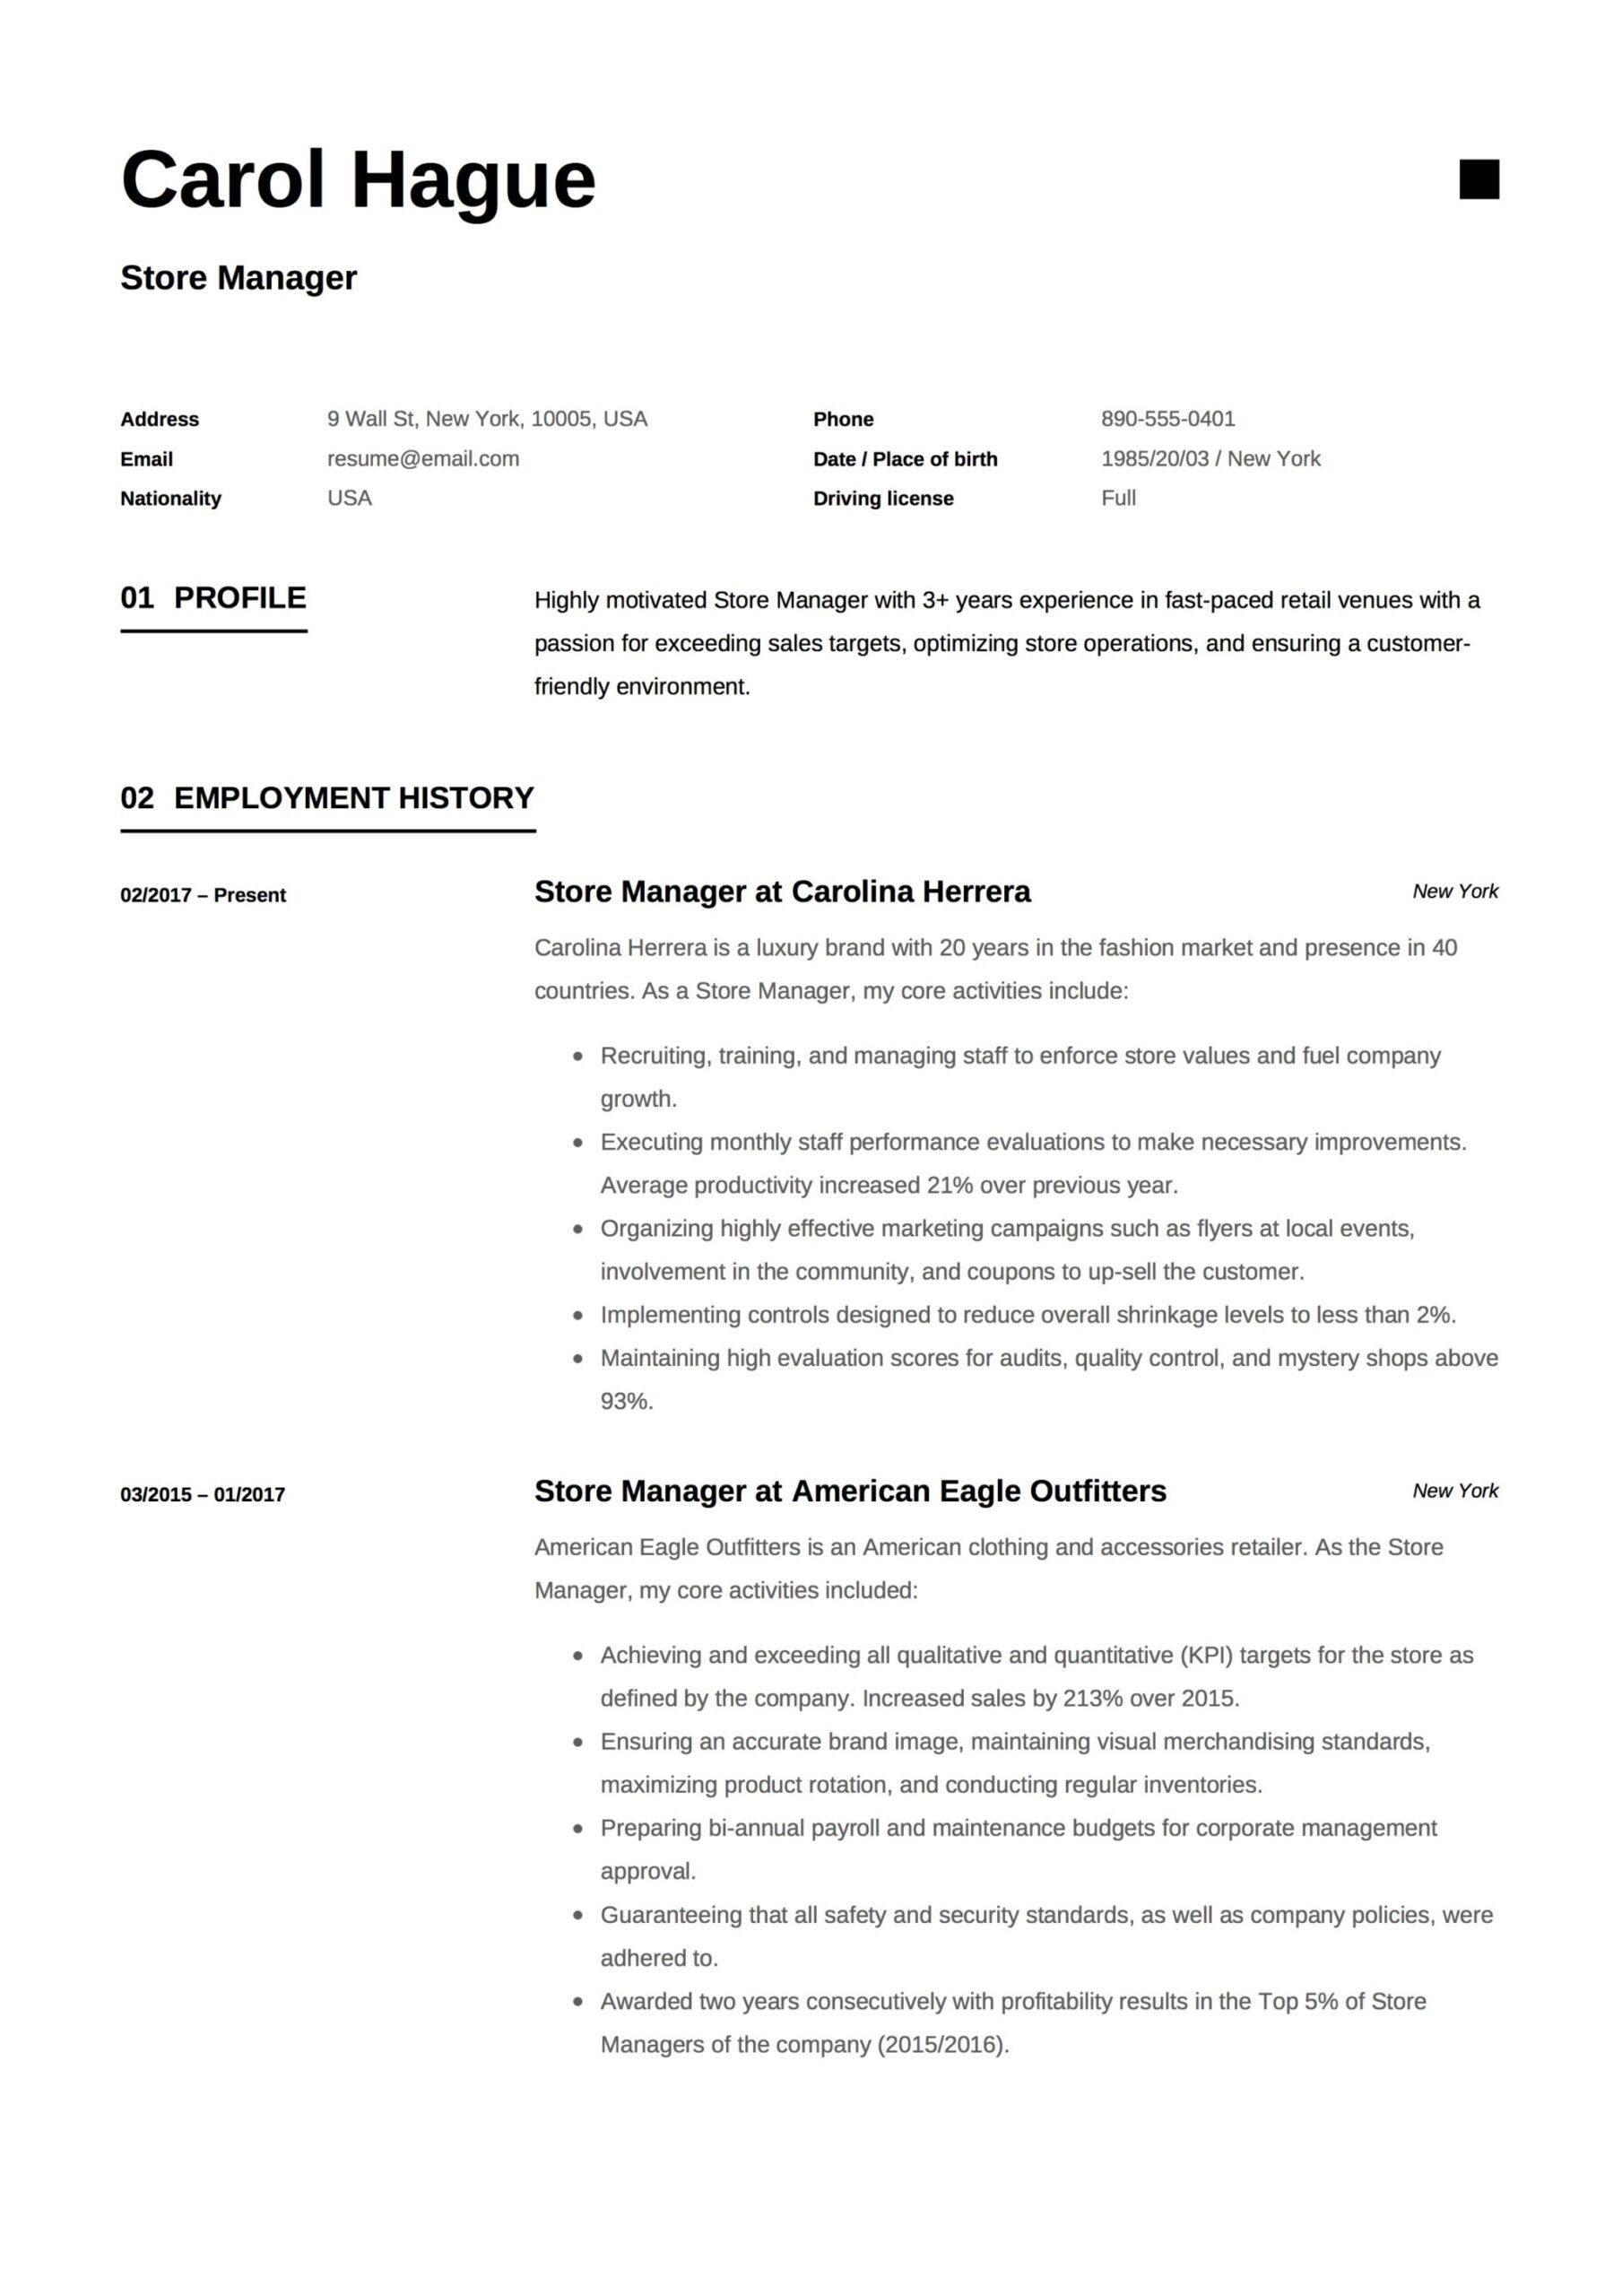 store manager resume guide samples pdf objective retail carol hague example electrical Resume Resume Objective Retail Manager